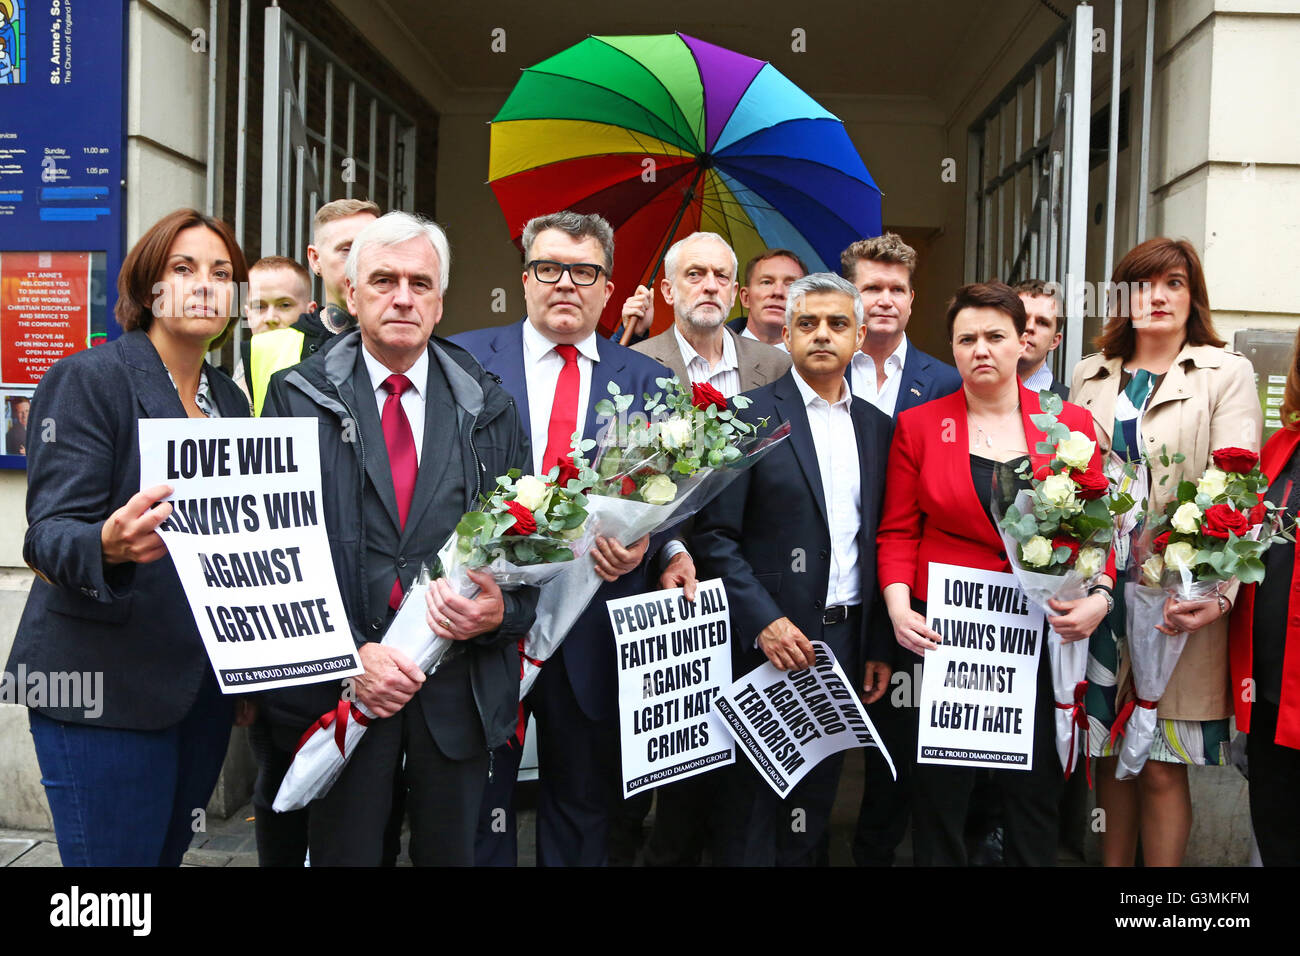 London, UK. 13th June, 2016. London Mayor Sadiq Khan with Jeremy Corbyn, American Ambassador Matthew Barzun and - Stock Image